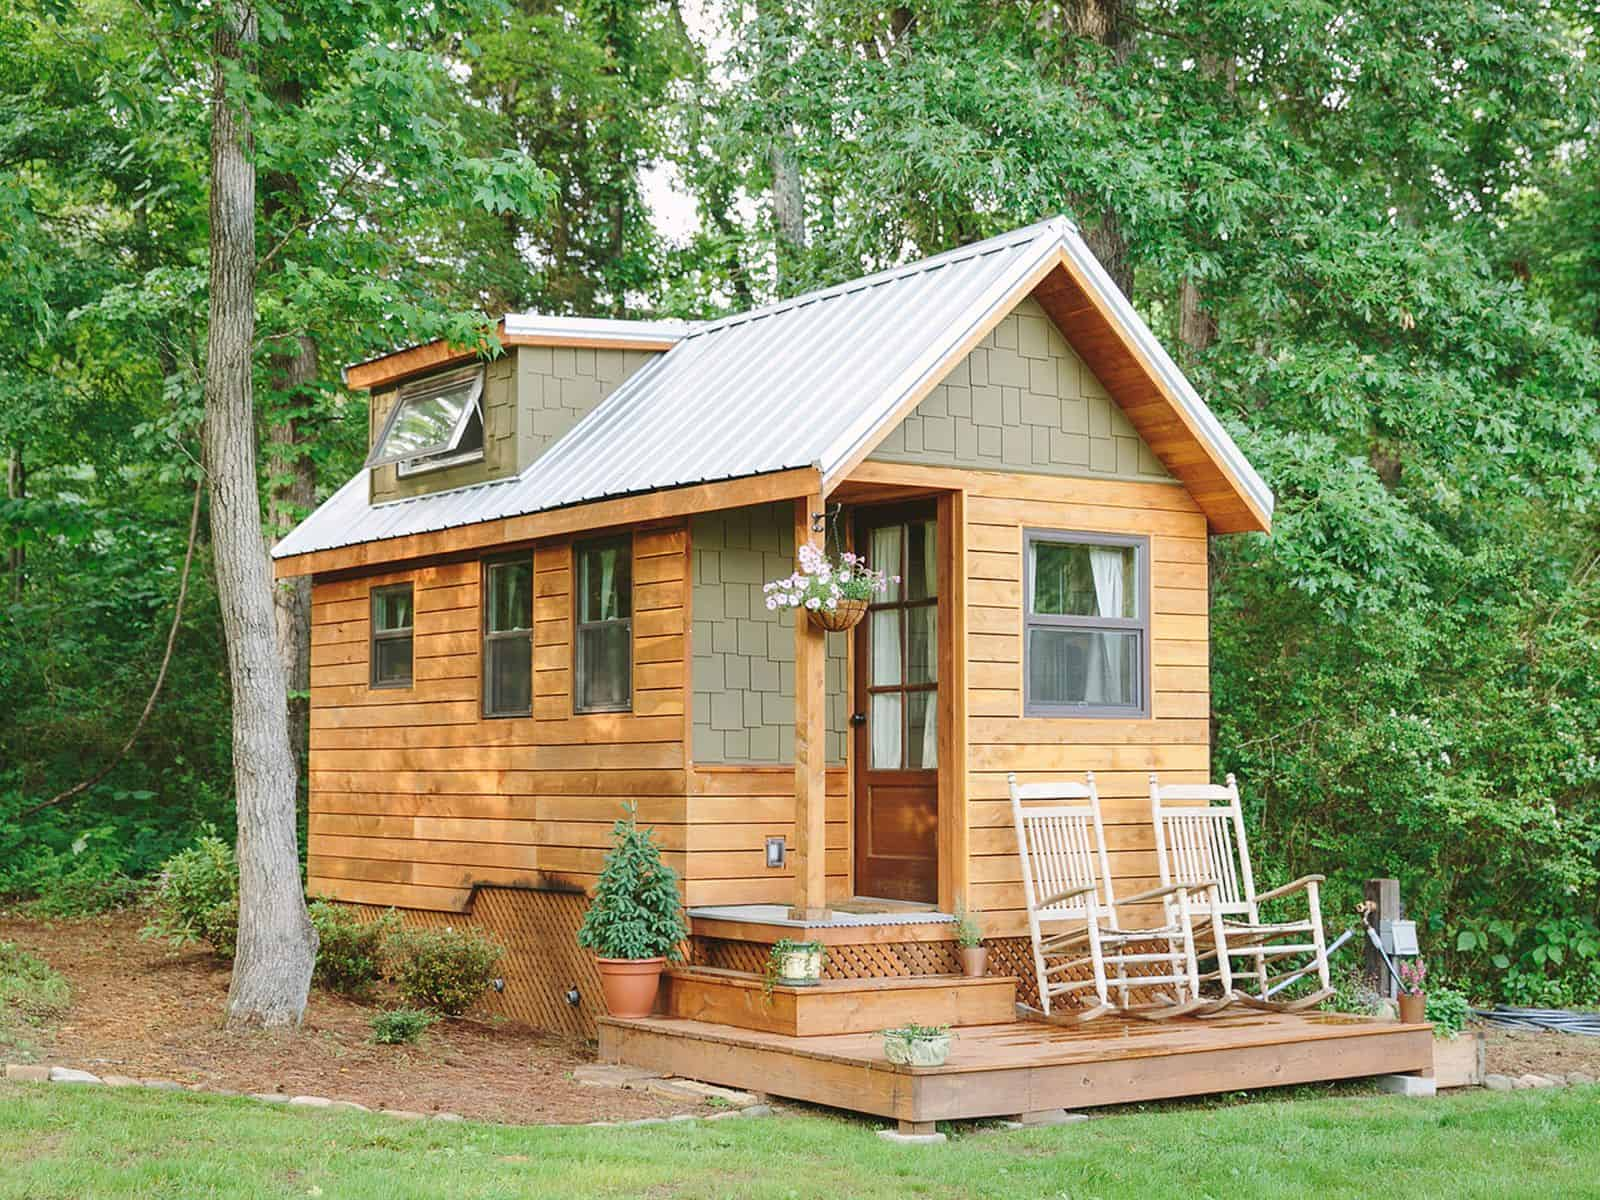 Extremely tiny homes minimalistic living in style for Tiny house minimalist